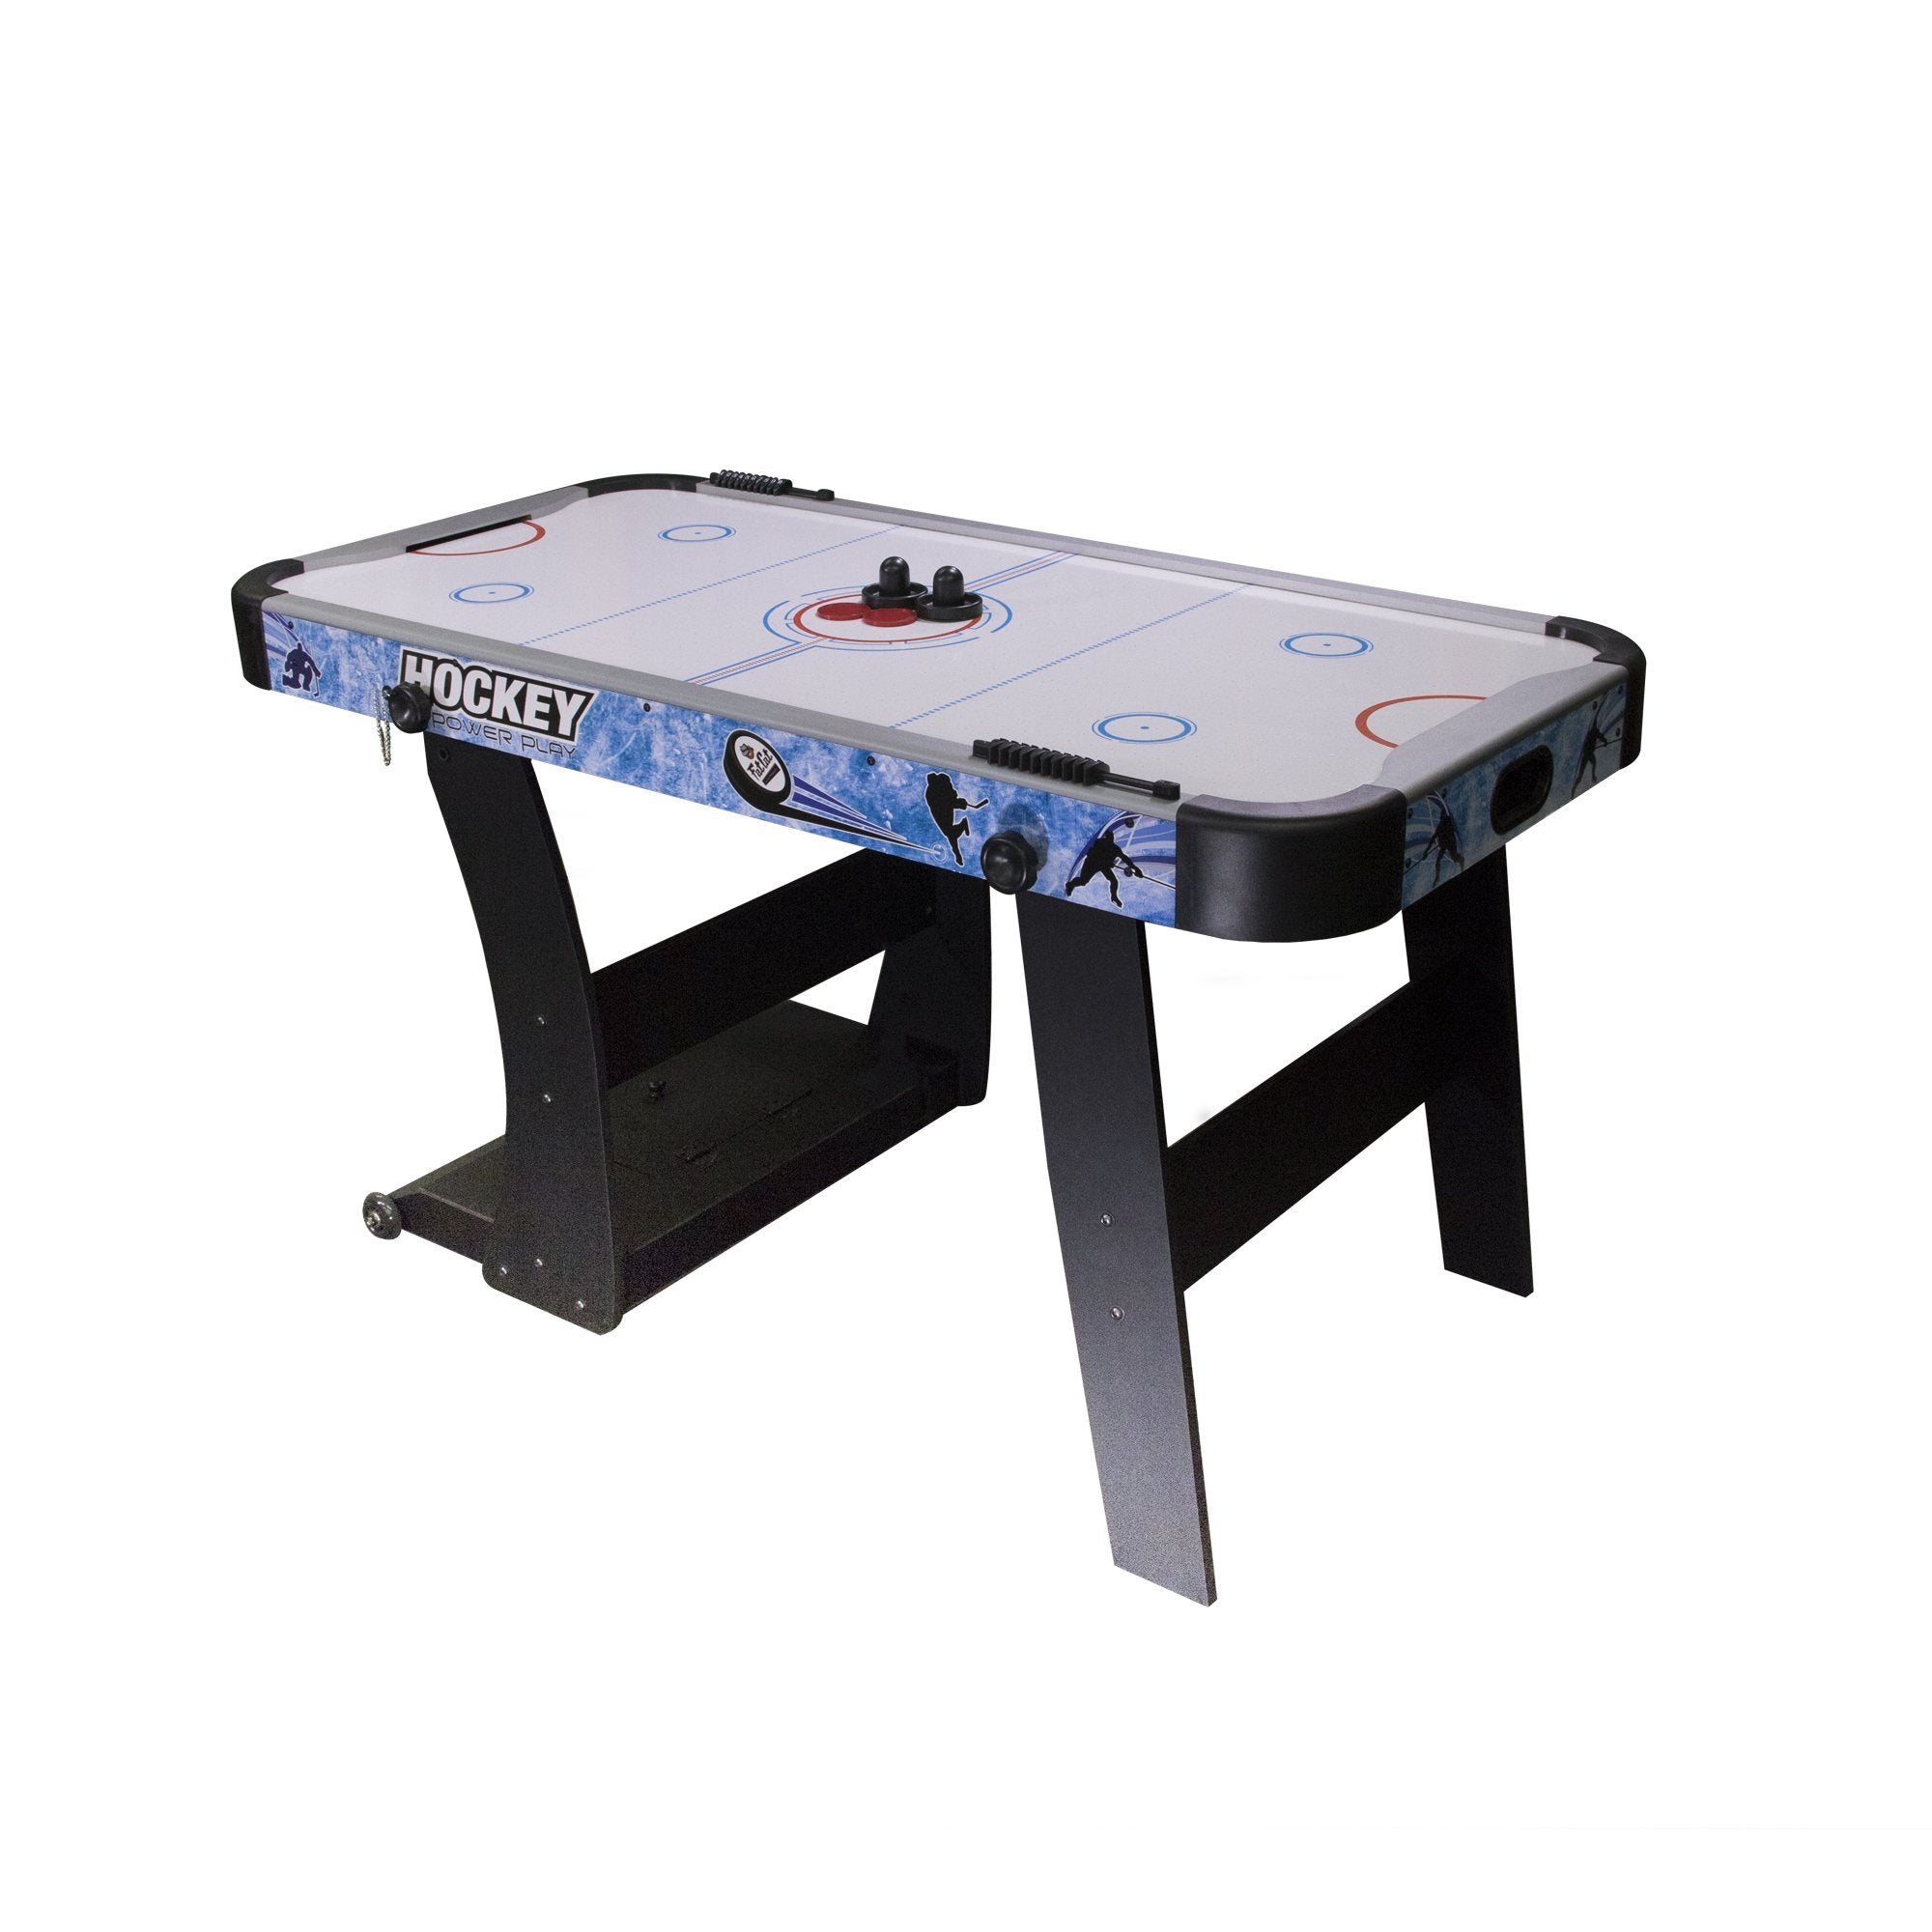 Fat Cat Aeroblast 5ft Air Hockey Table - Gaming Blaze